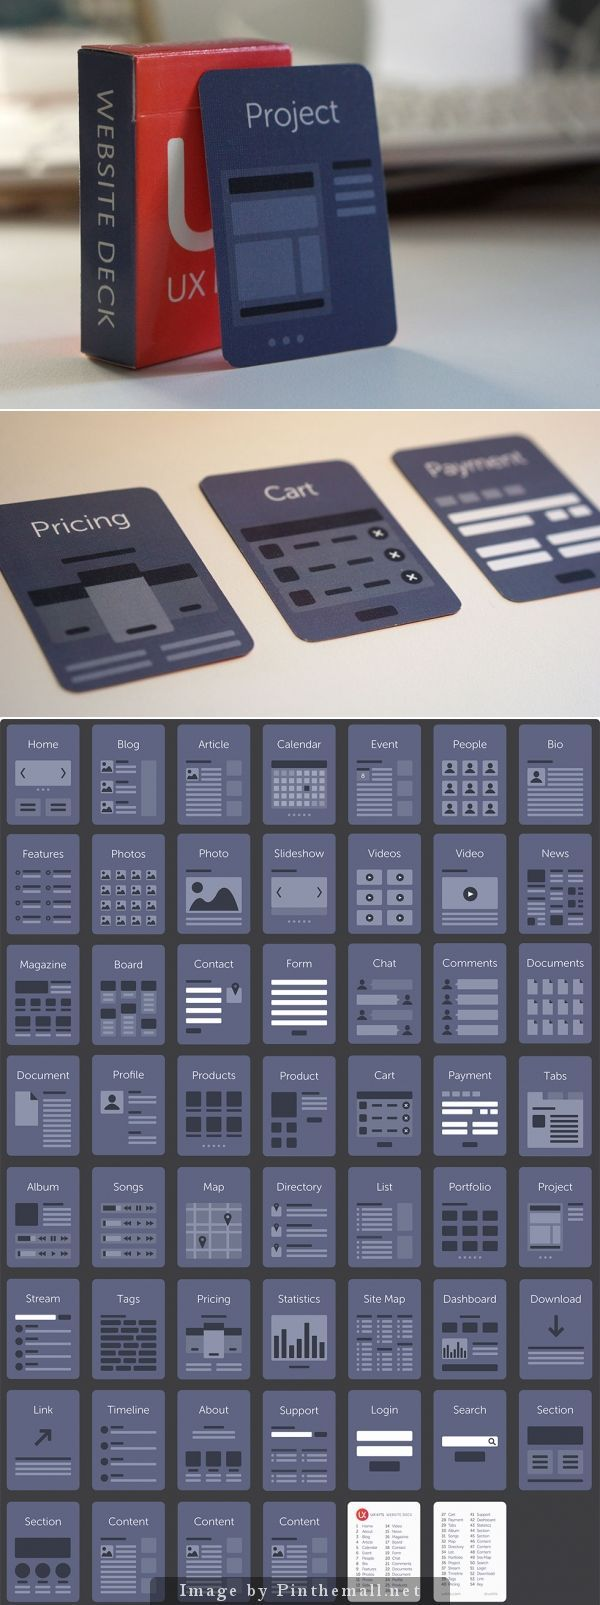 Low-fi wireframes + deck of cards = UX Christmas gift.Get it here.